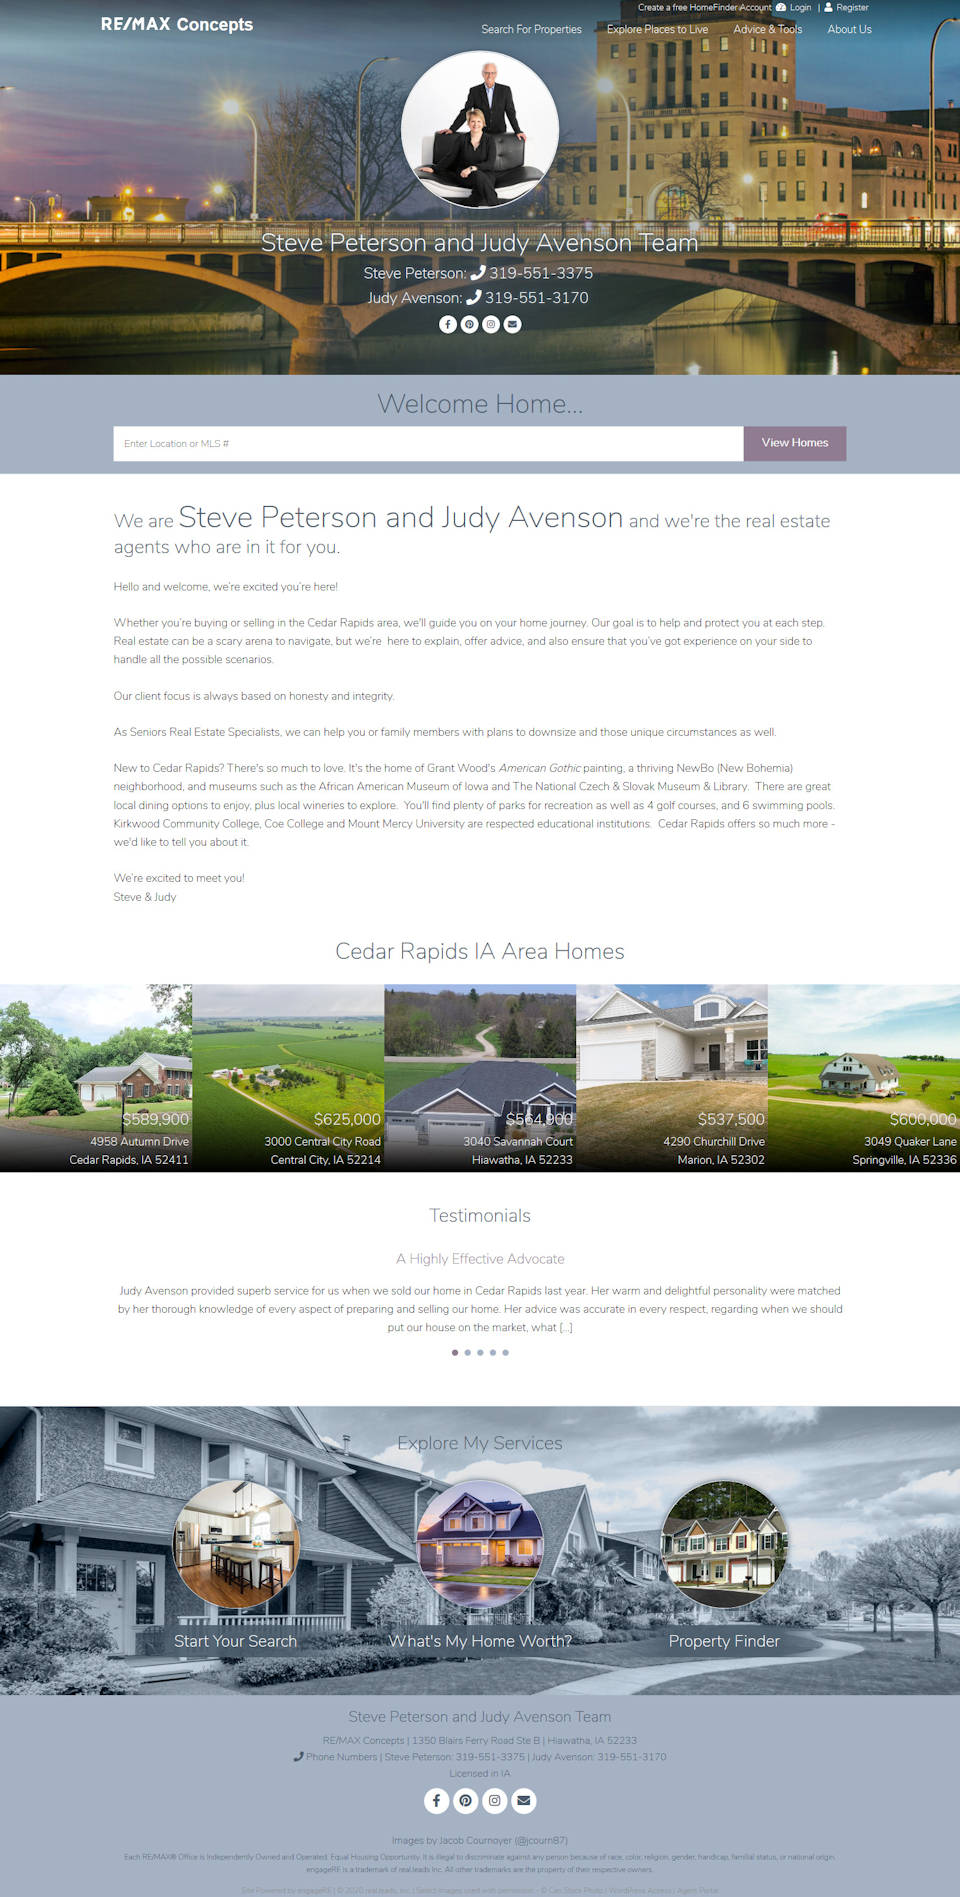 Steve Peterson and Judy Avenson Team full screenshot